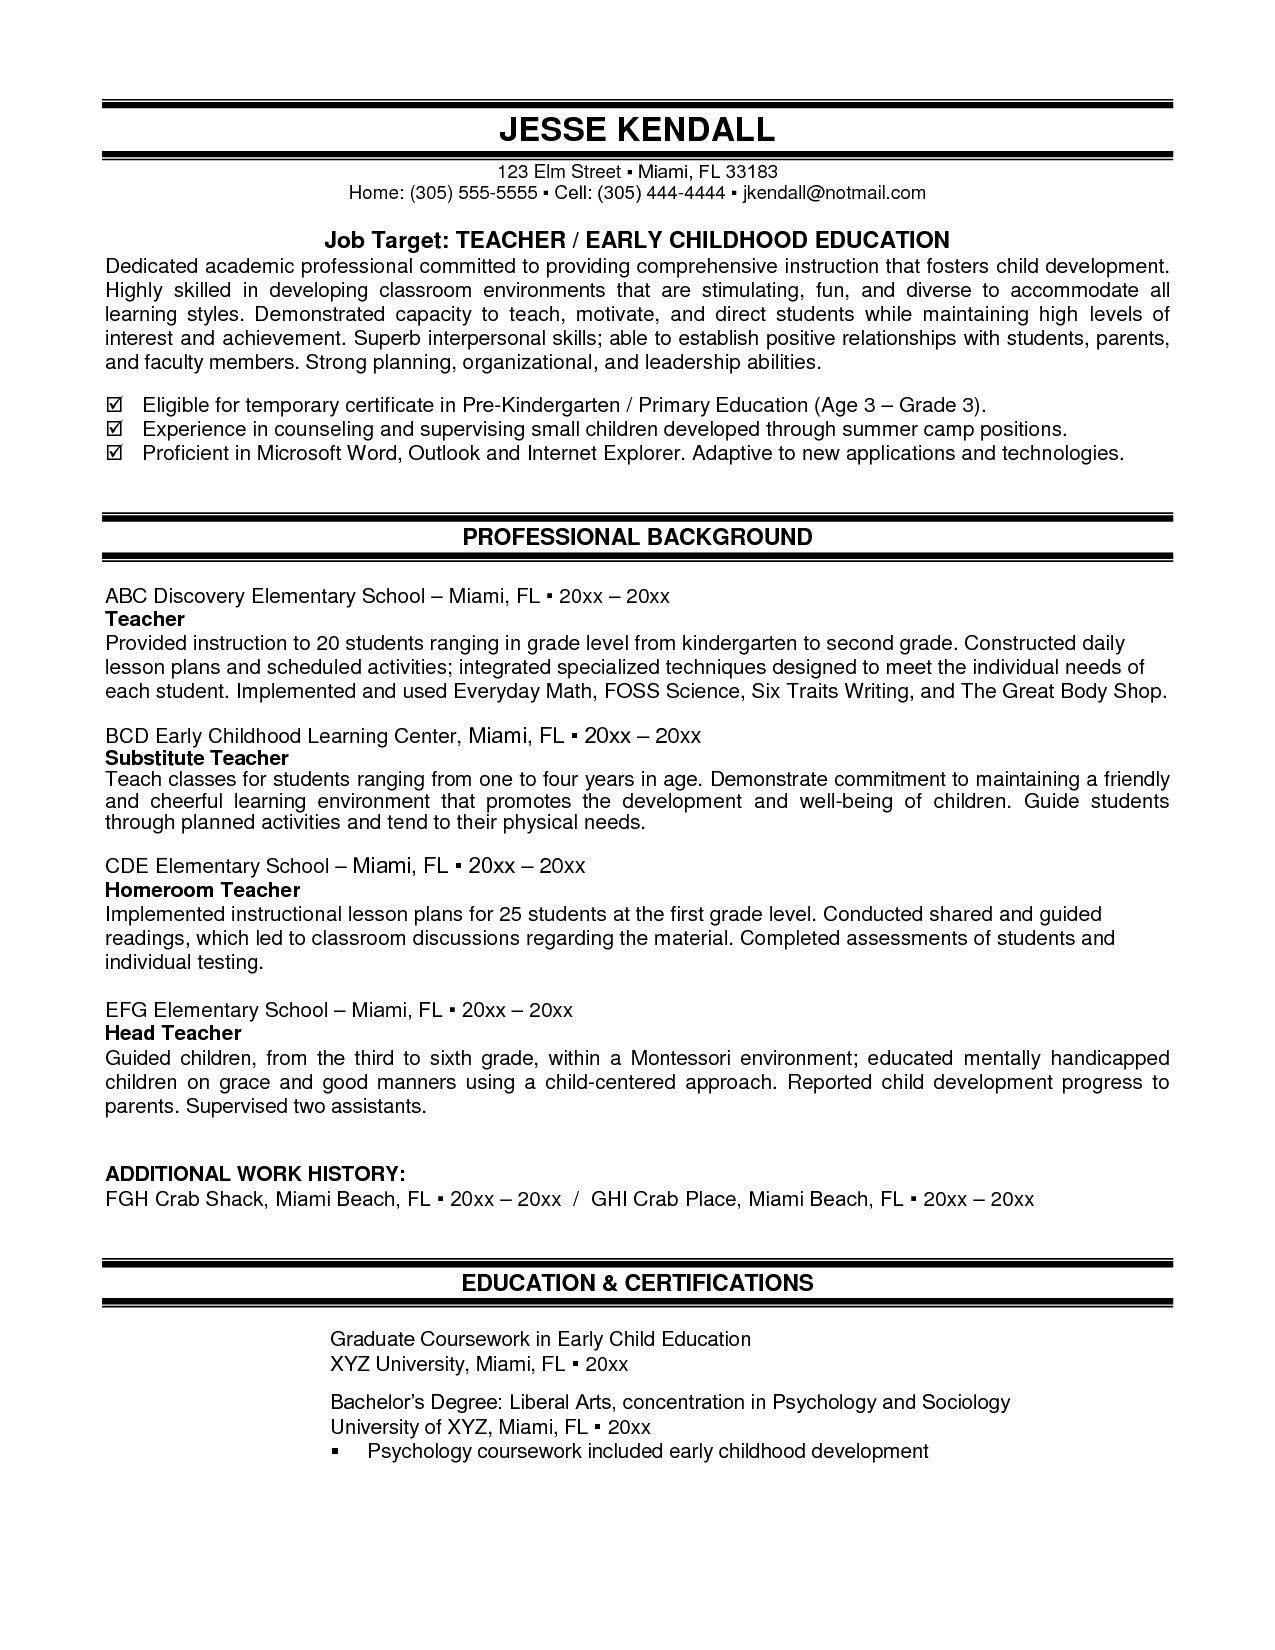 Lifeguard Responsibilities Resume - Special Education Teacher Job Description Resume New Elementary